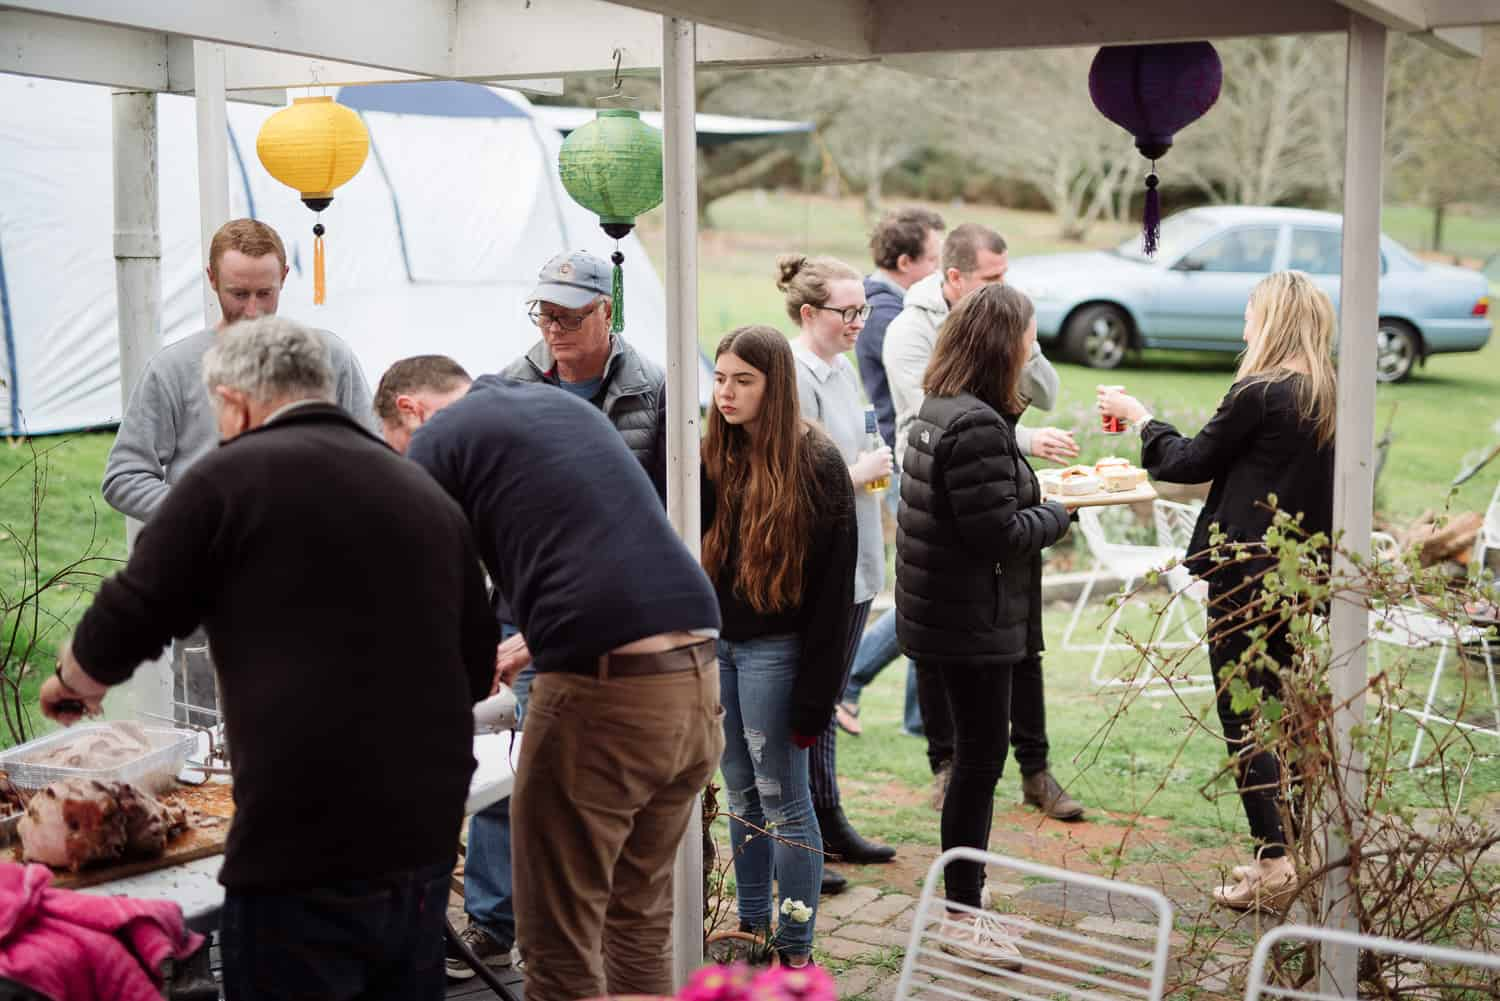 Family birthday party near Colac